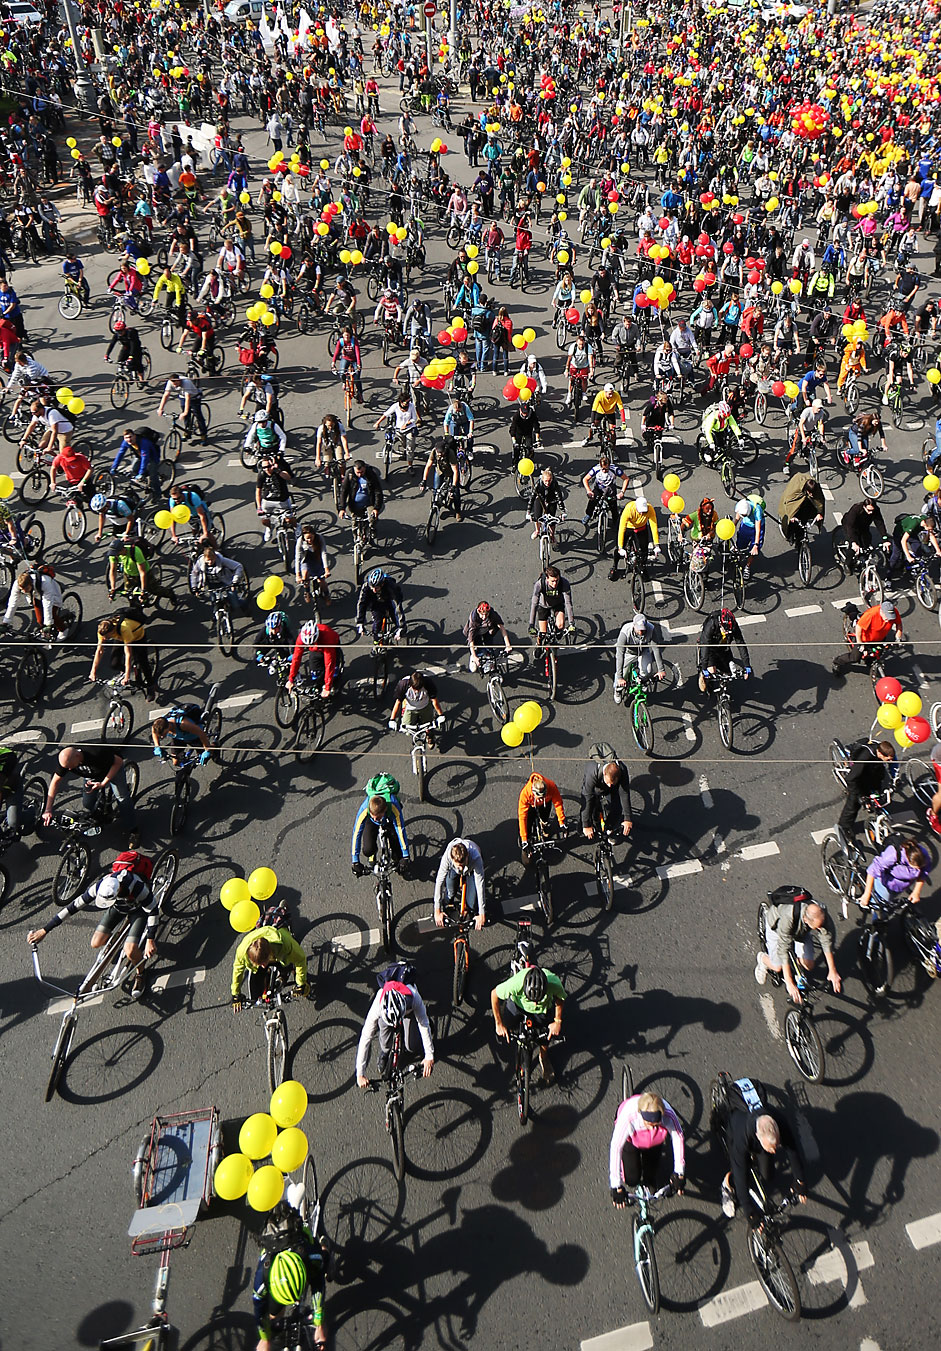 Participants in a bicycle parade for development of cycling infrastructure and road safety on Moscow City Day.